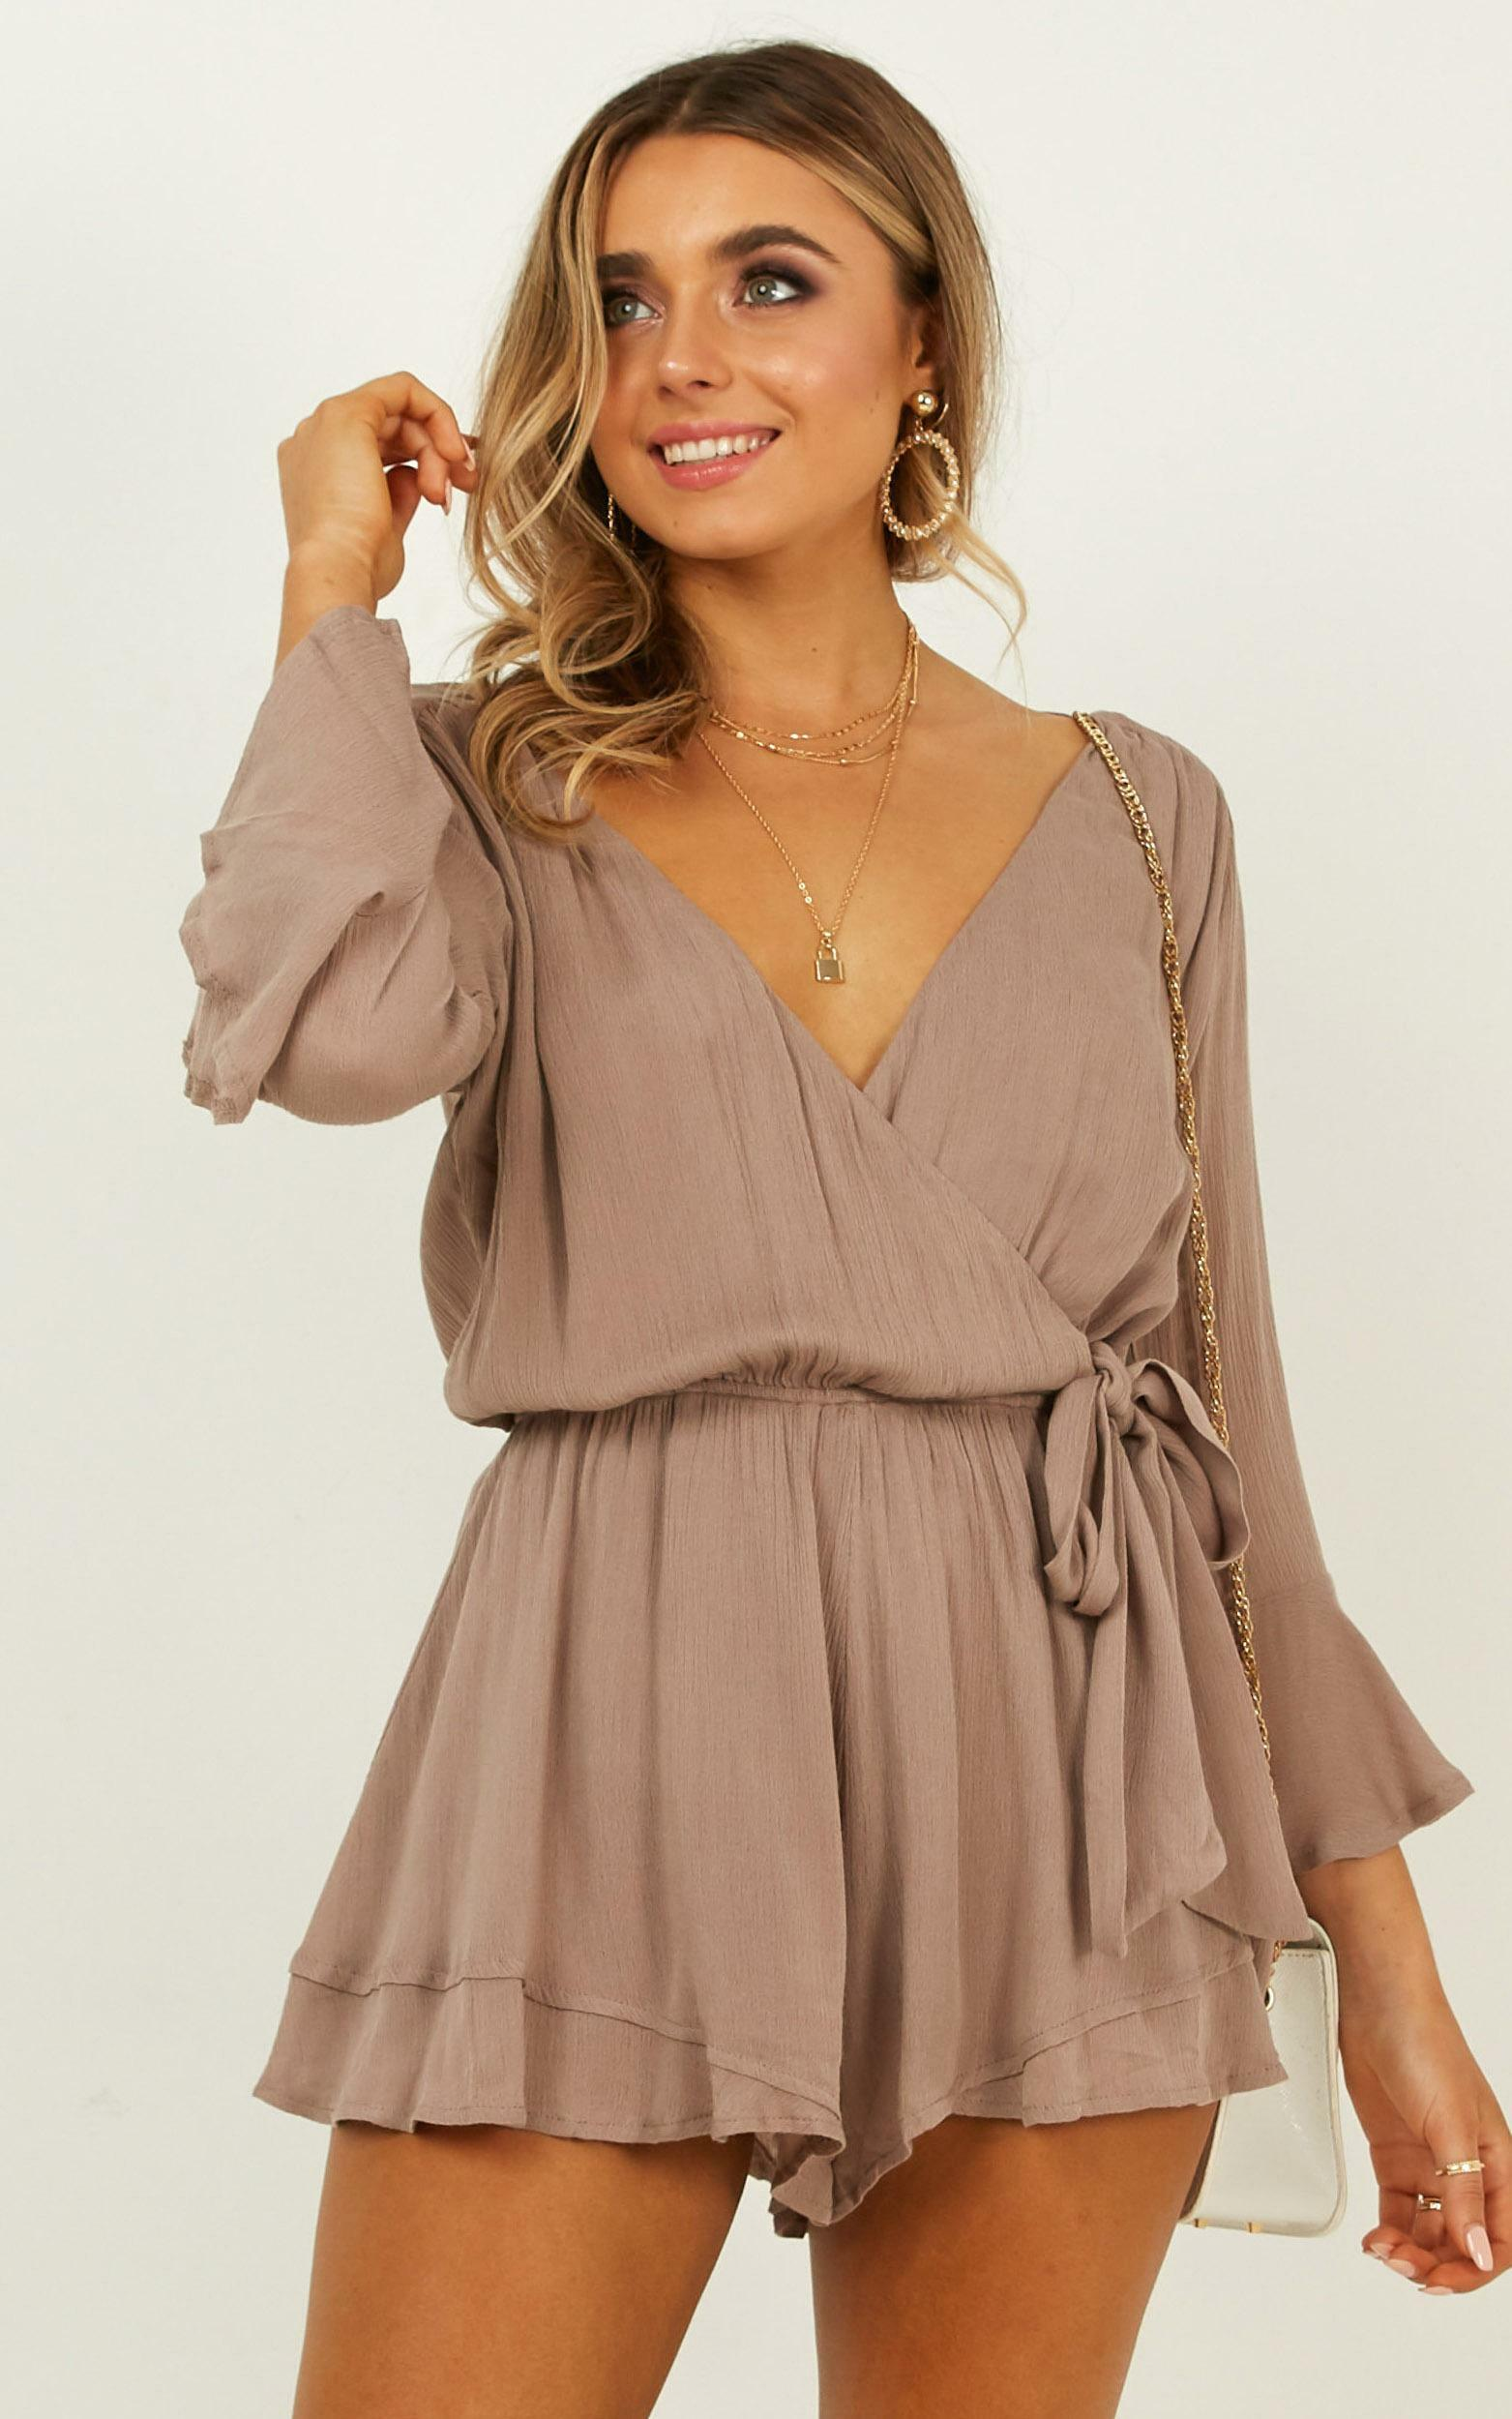 Sunday Breeze Playsuit in Taupe - 14, BRN2, hi-res image number null